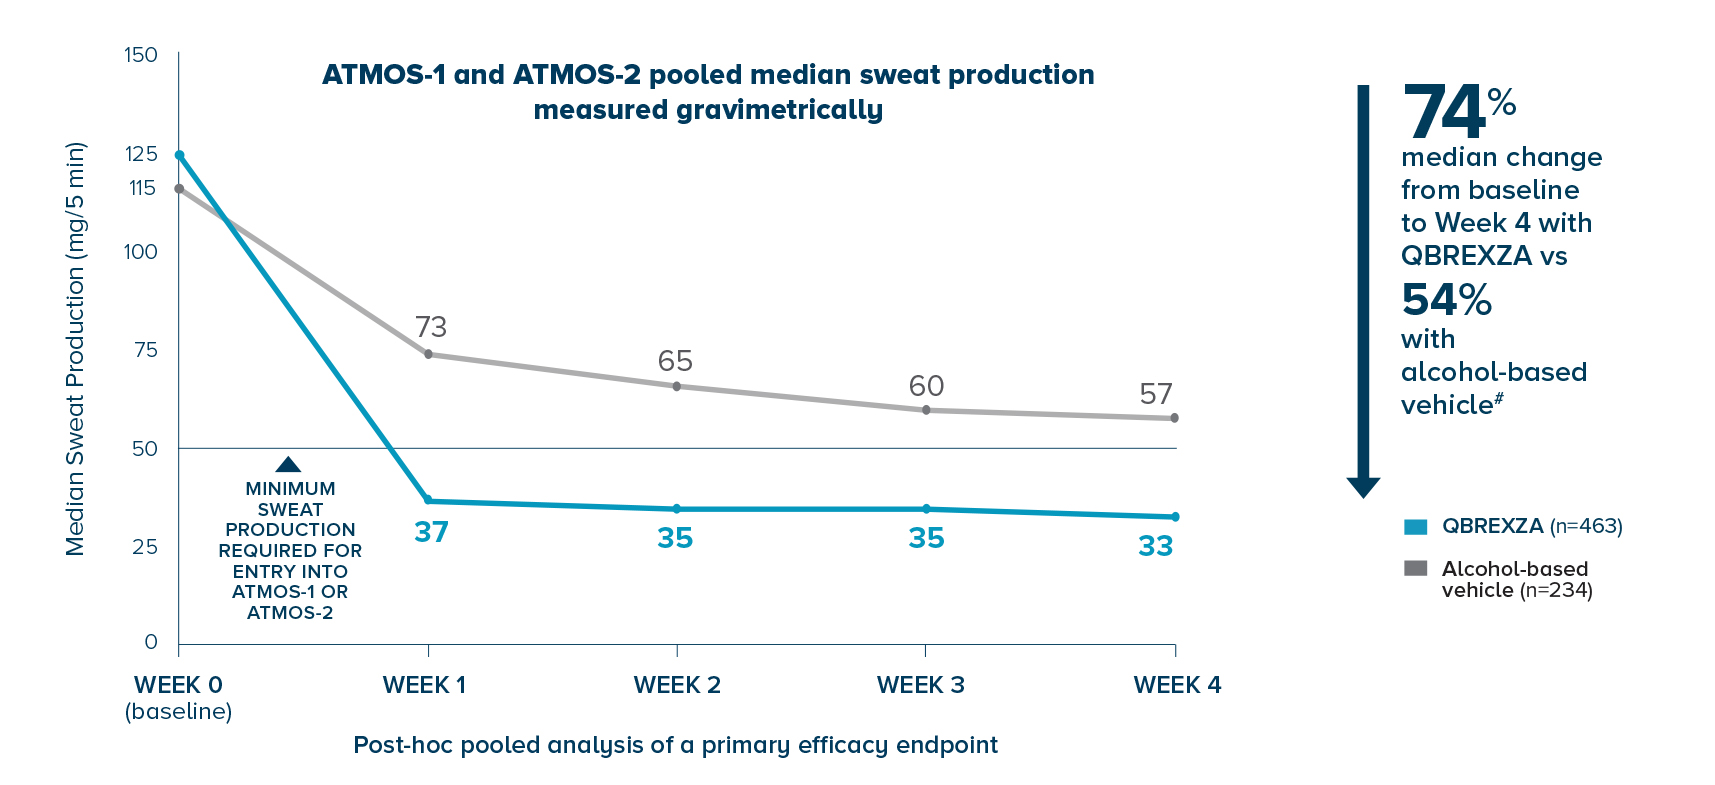 Qbrexza demonstrated a 74% median reduction from baseline to week 4 (n=463) vs 54% with alcohol-based vehicle (n=234) in ATMOS-1 and ATMOS-2 pooled median sweat production measured gravimetrically